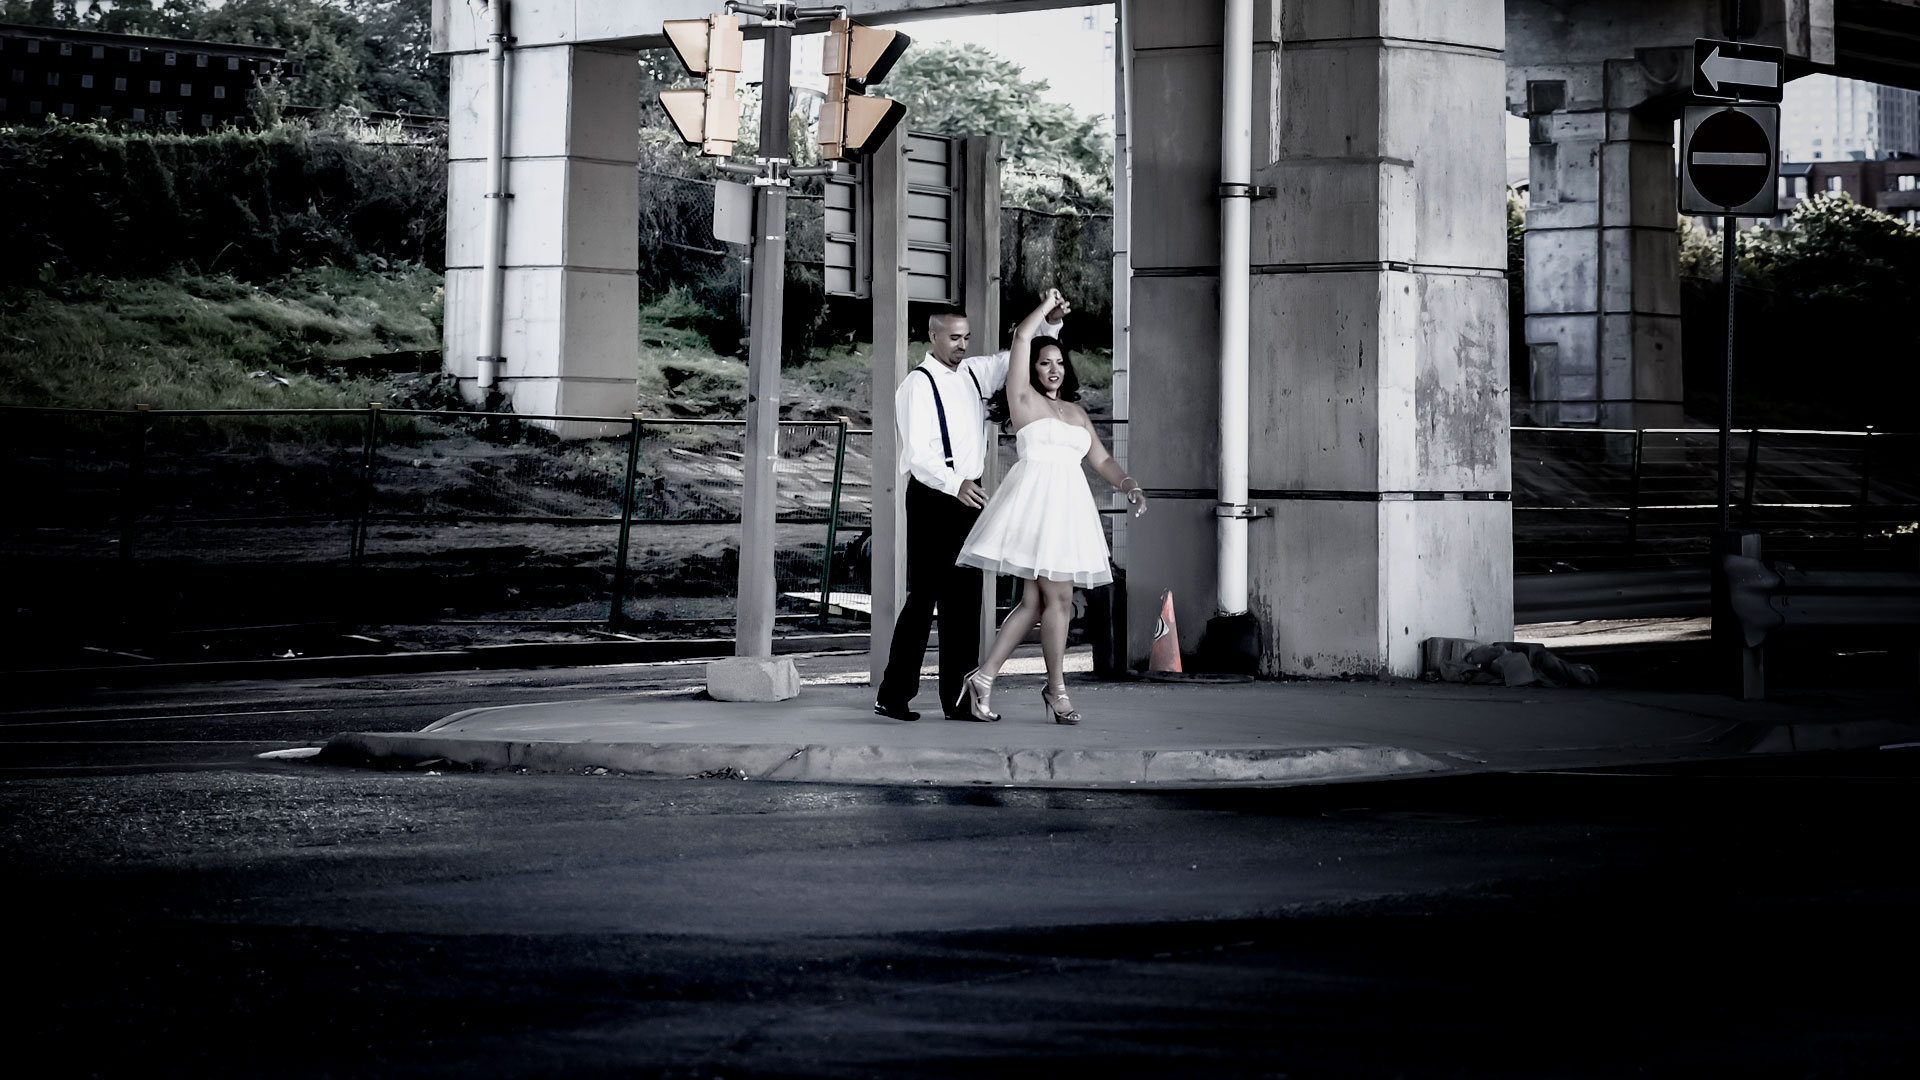 epic_sky_pictures_groom_and_bride_wedding_photography_closeup_photo_brampton_road_tunnel_dance_engagement_shoot_eshoot